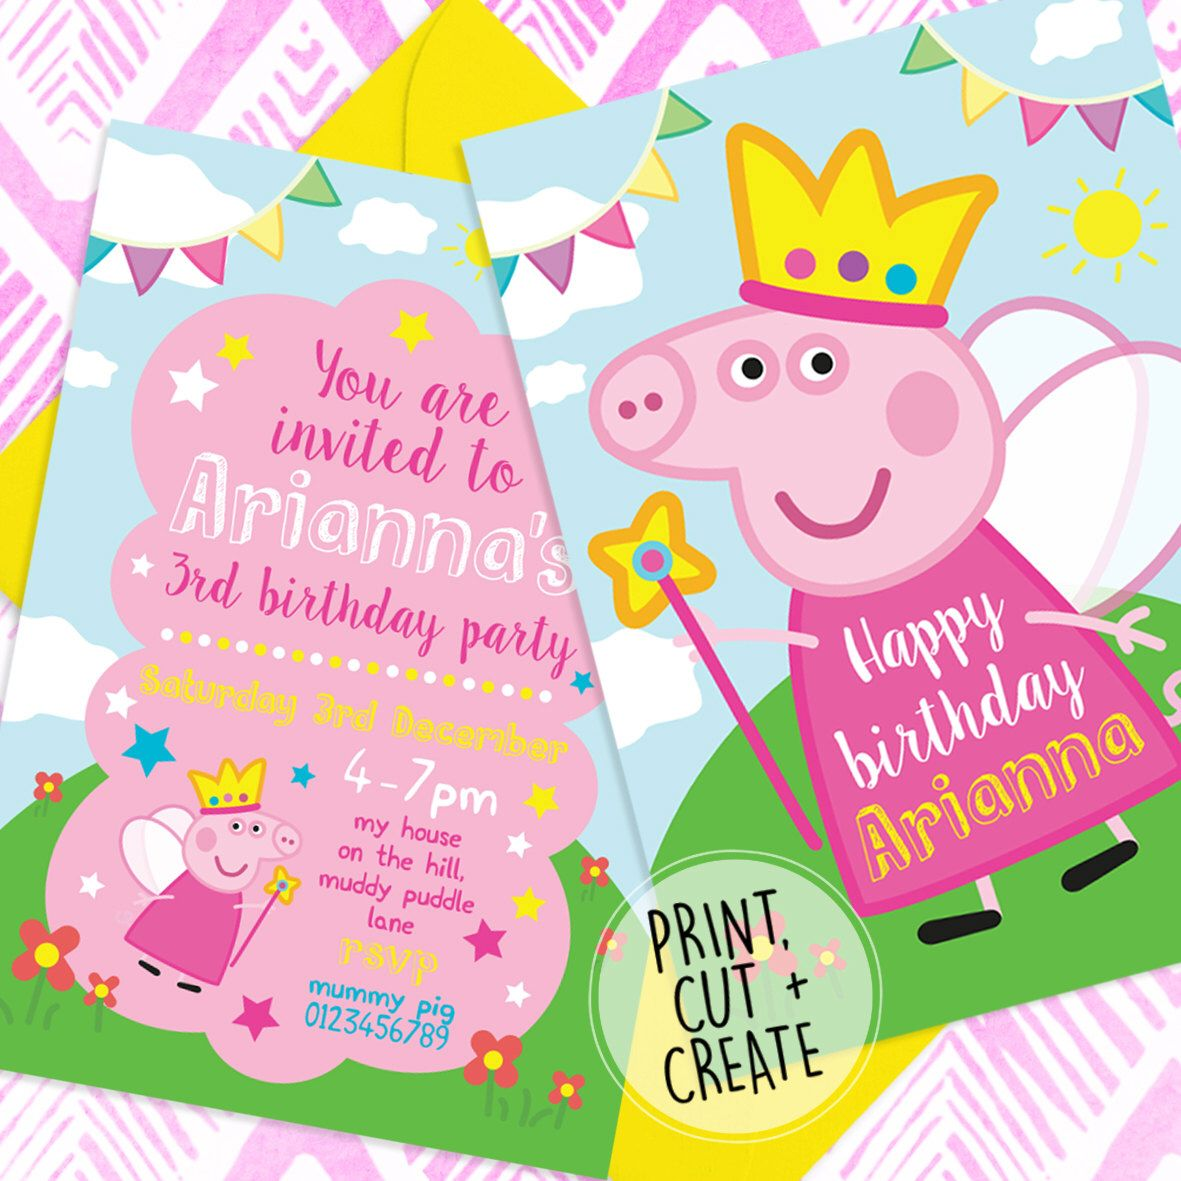 image regarding Peppa Pig Printable Invitations named Printable Electronic History Customized Princess Fairy Peppa Pig